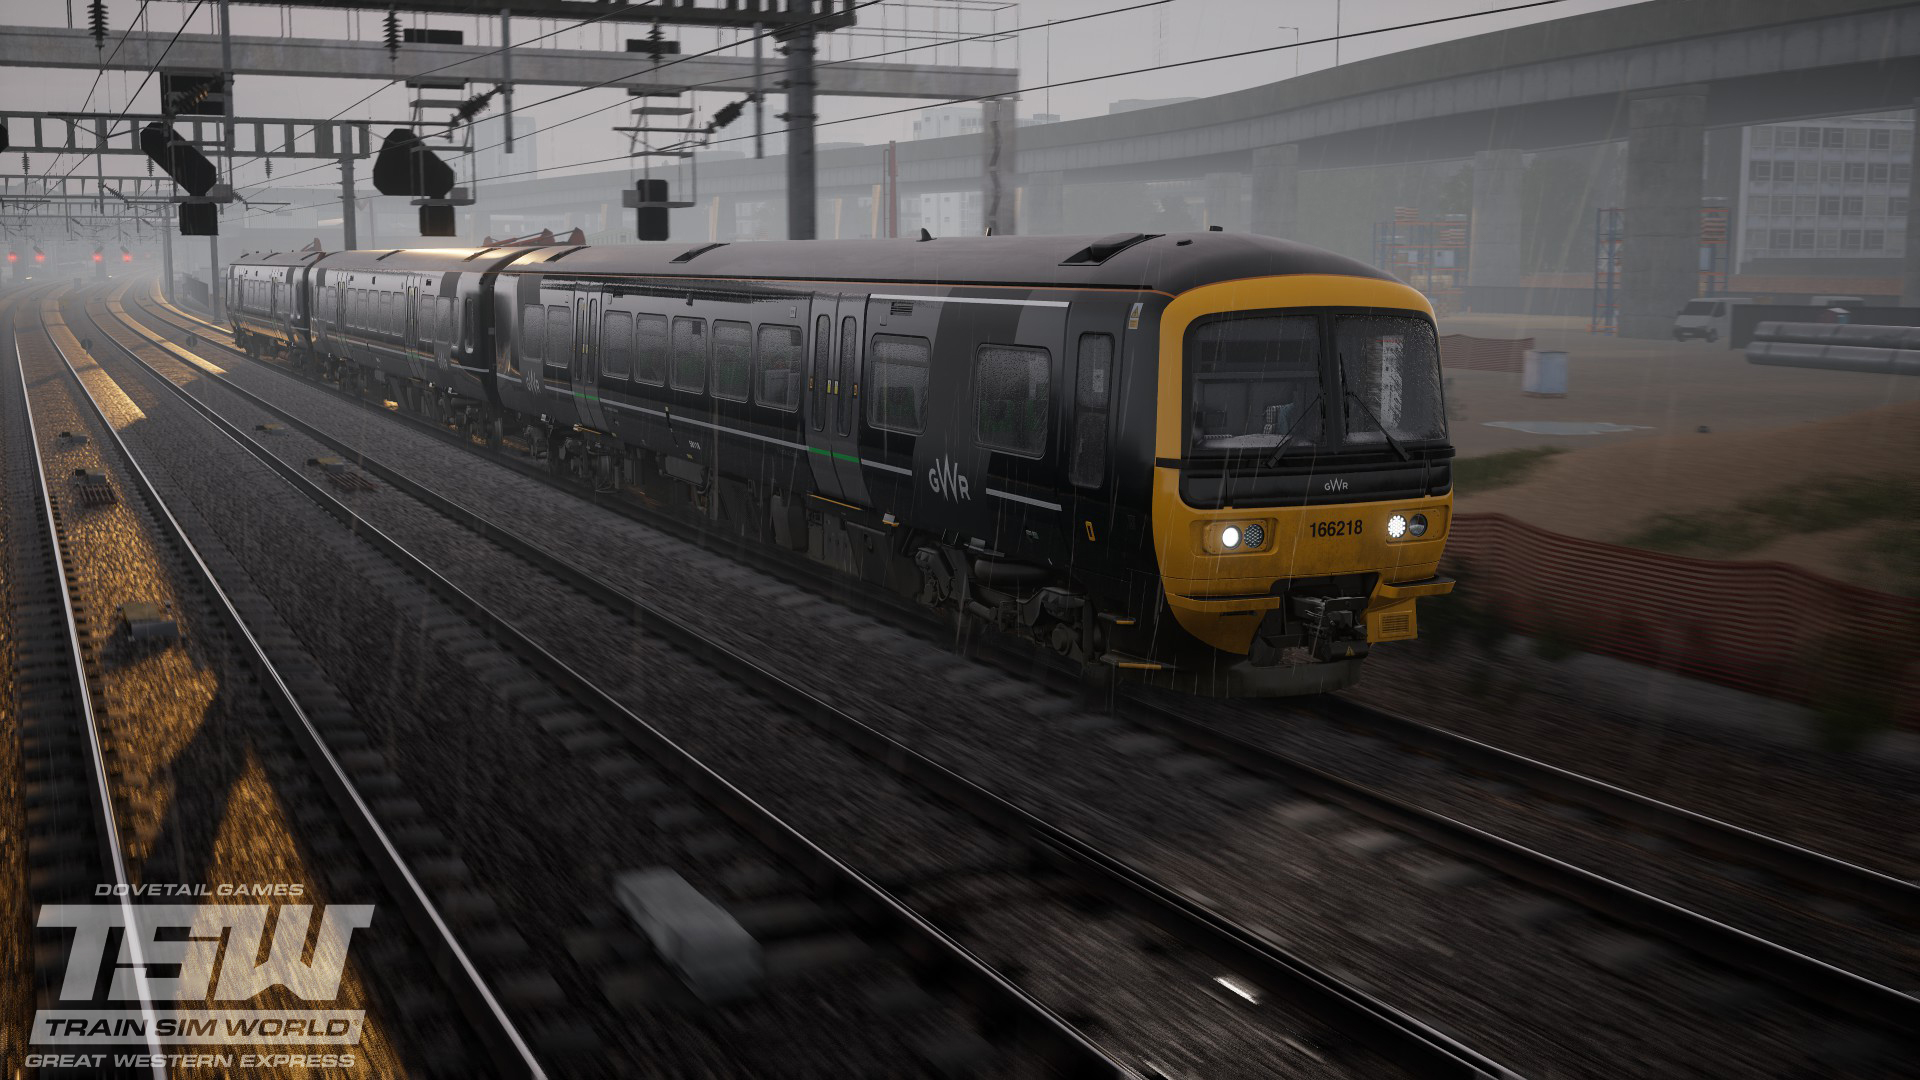 Train Sim World: Great Western Express (Steam) @ RU